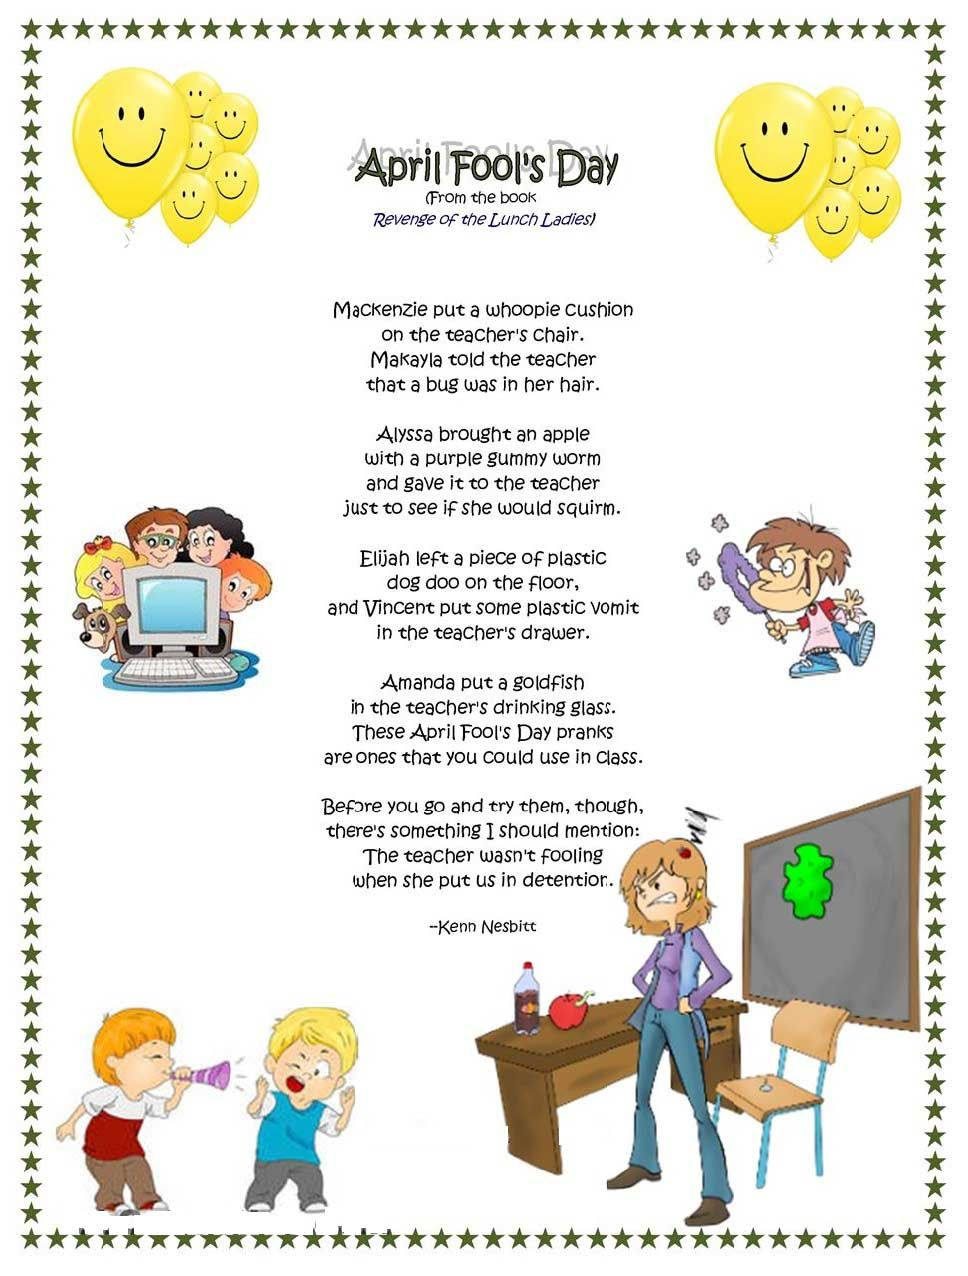 medium resolution of April Fools Day Funny Poems In Hindi \u0026 English   Kids Poems For All Fools  Day   Kids poems